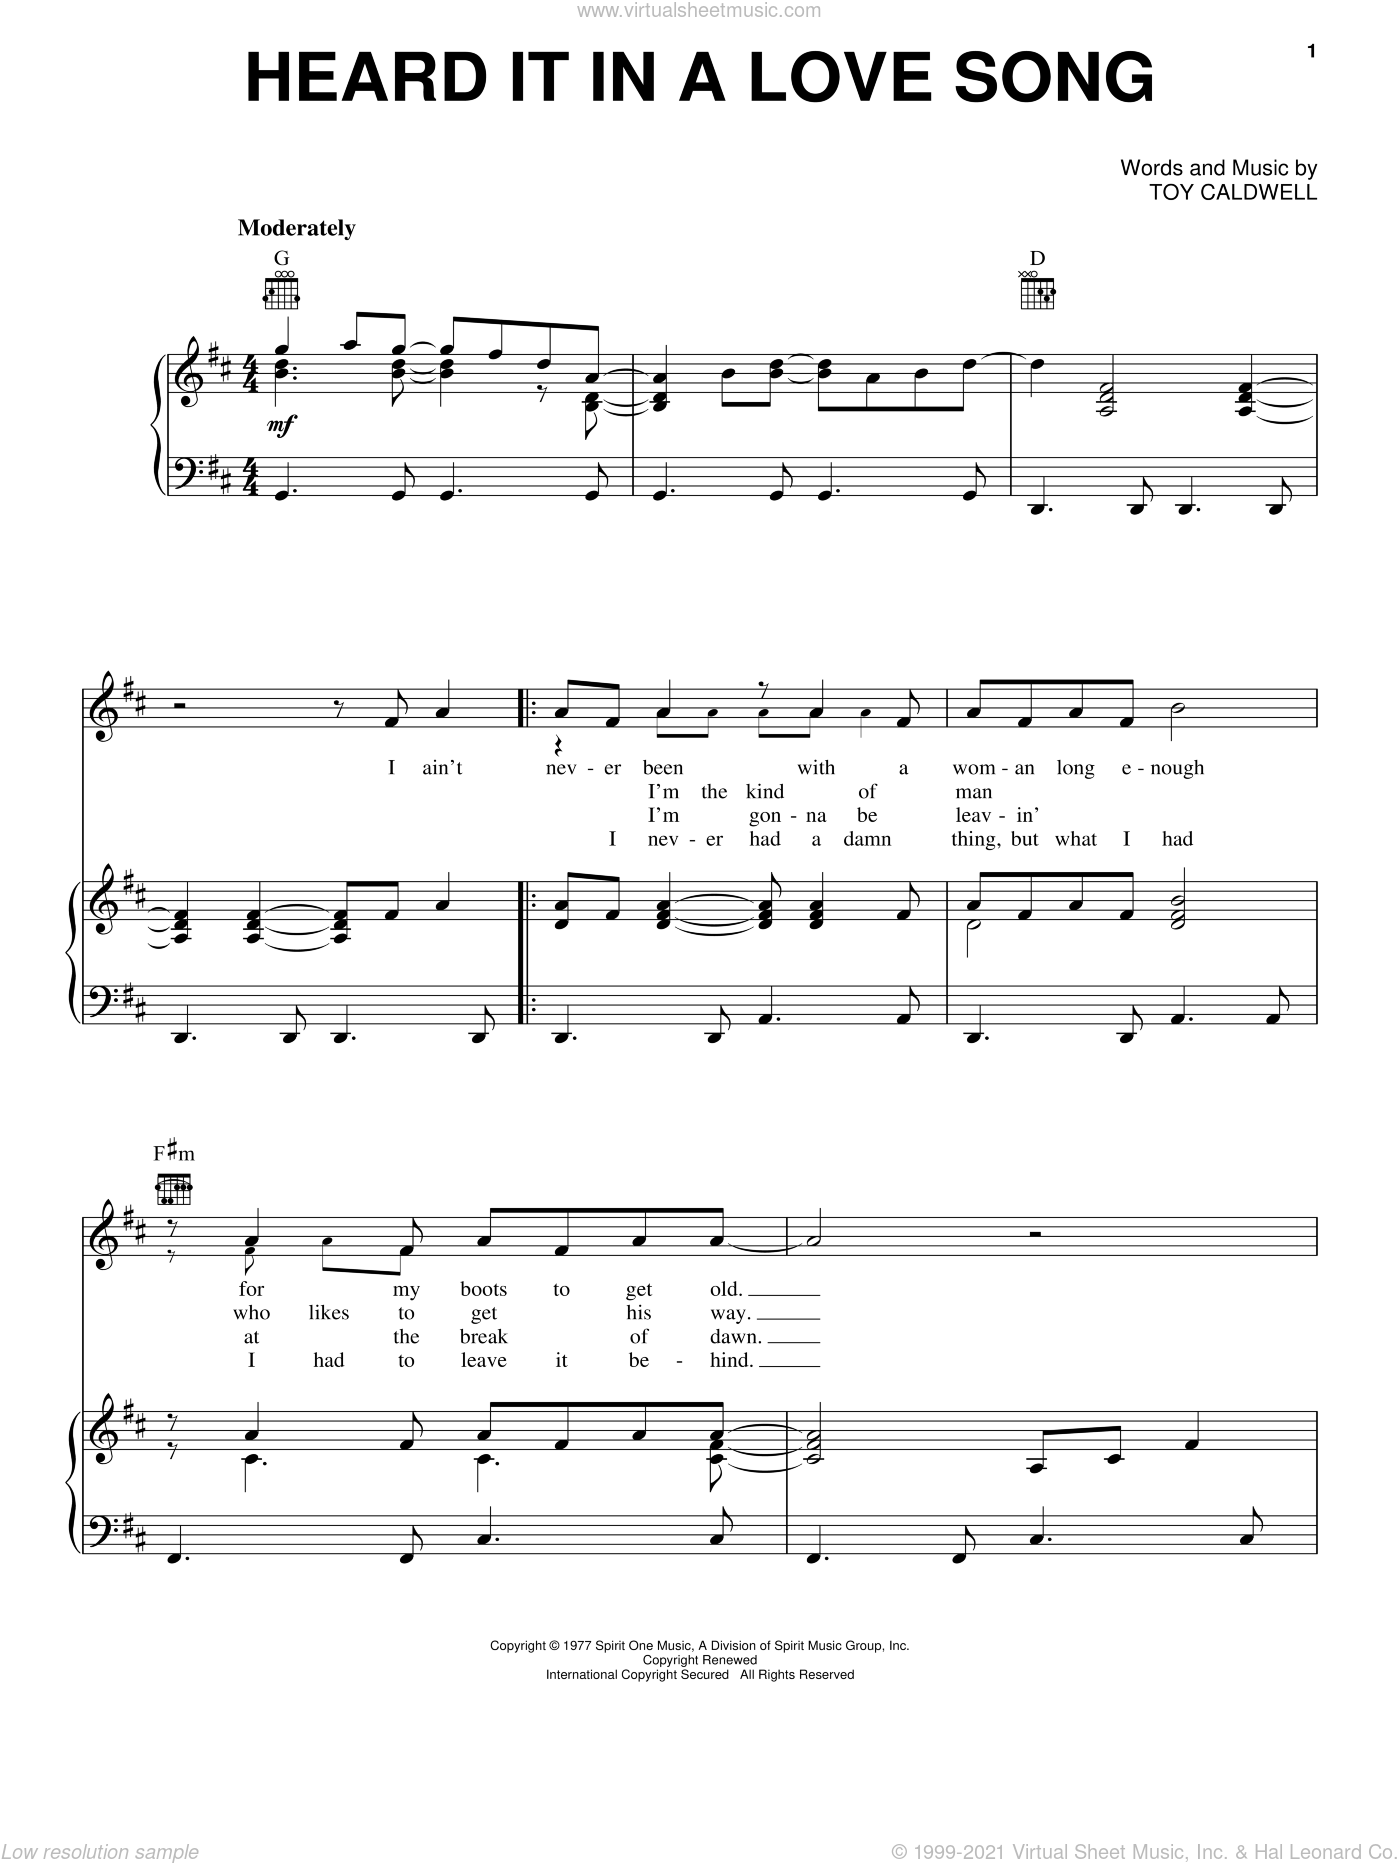 Heard It In A Love Song sheet music for voice, piano or guitar by Marshall Tucker Band and Toy Caldwell, intermediate skill level